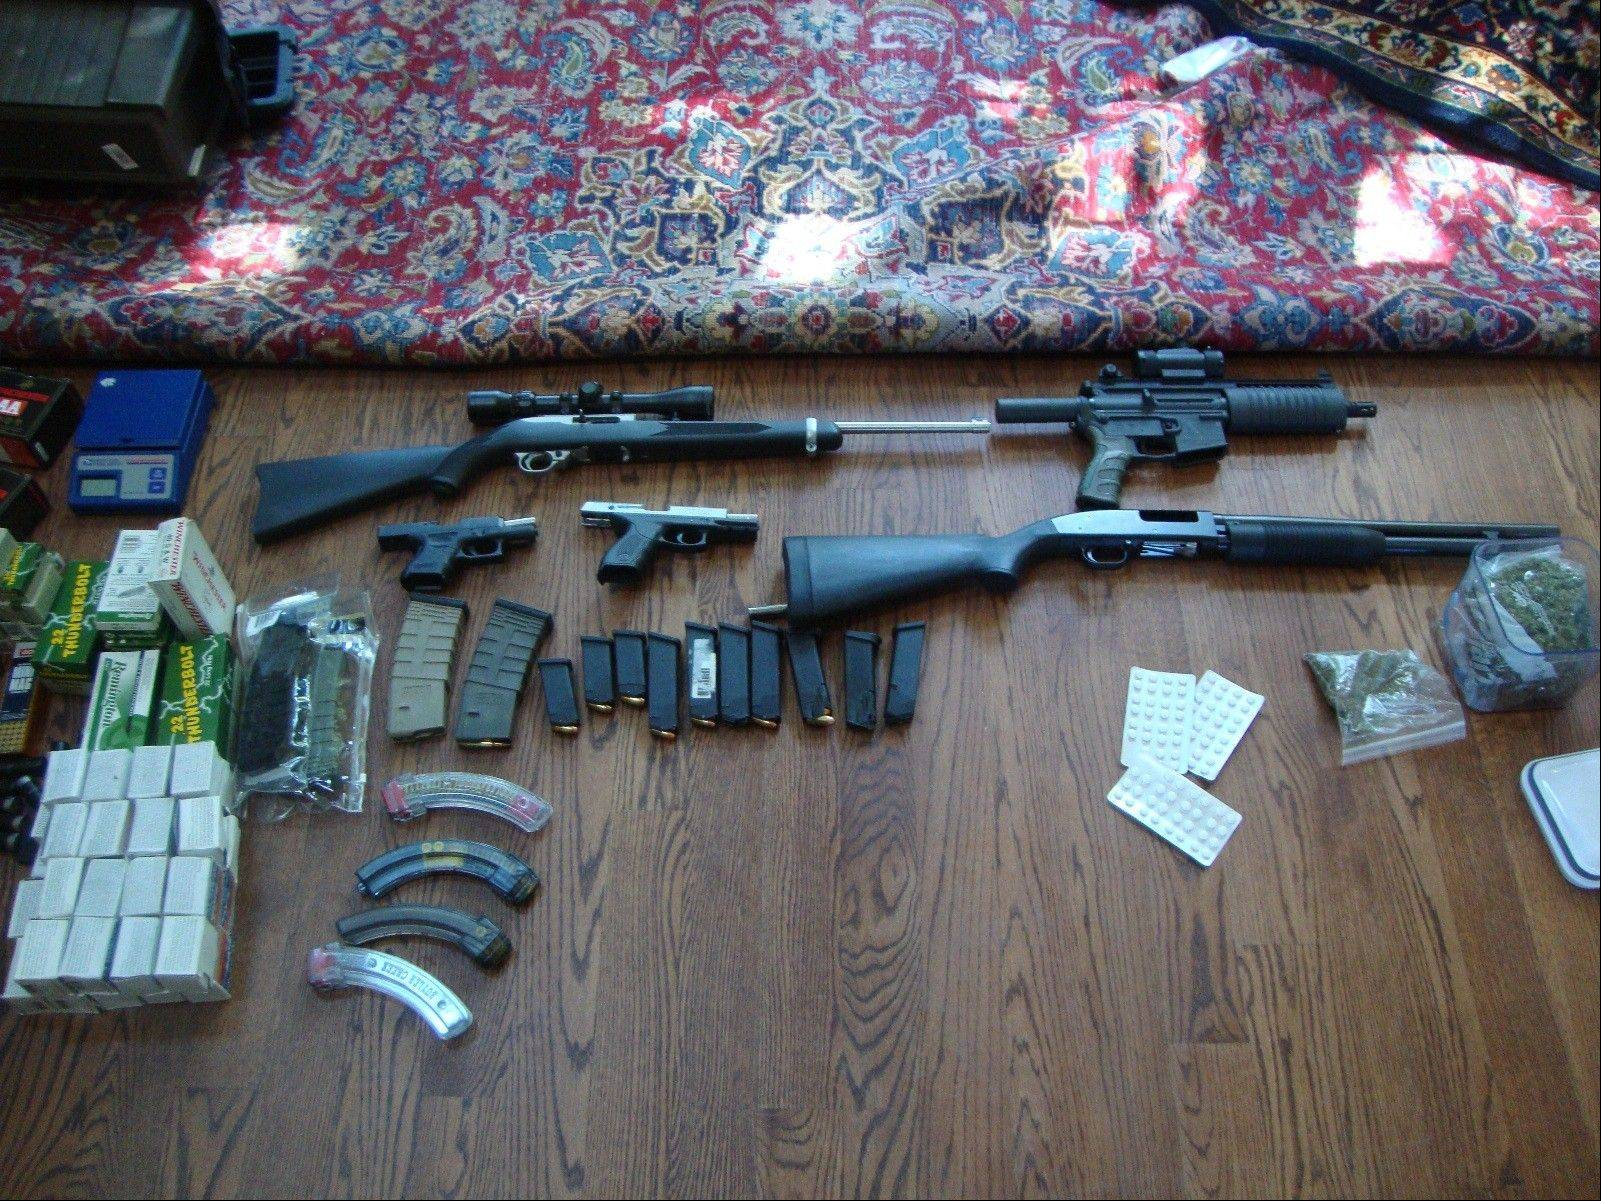 Cook County sheriff's police found these weapons inside a house in Glenview where marijuana was being grown.